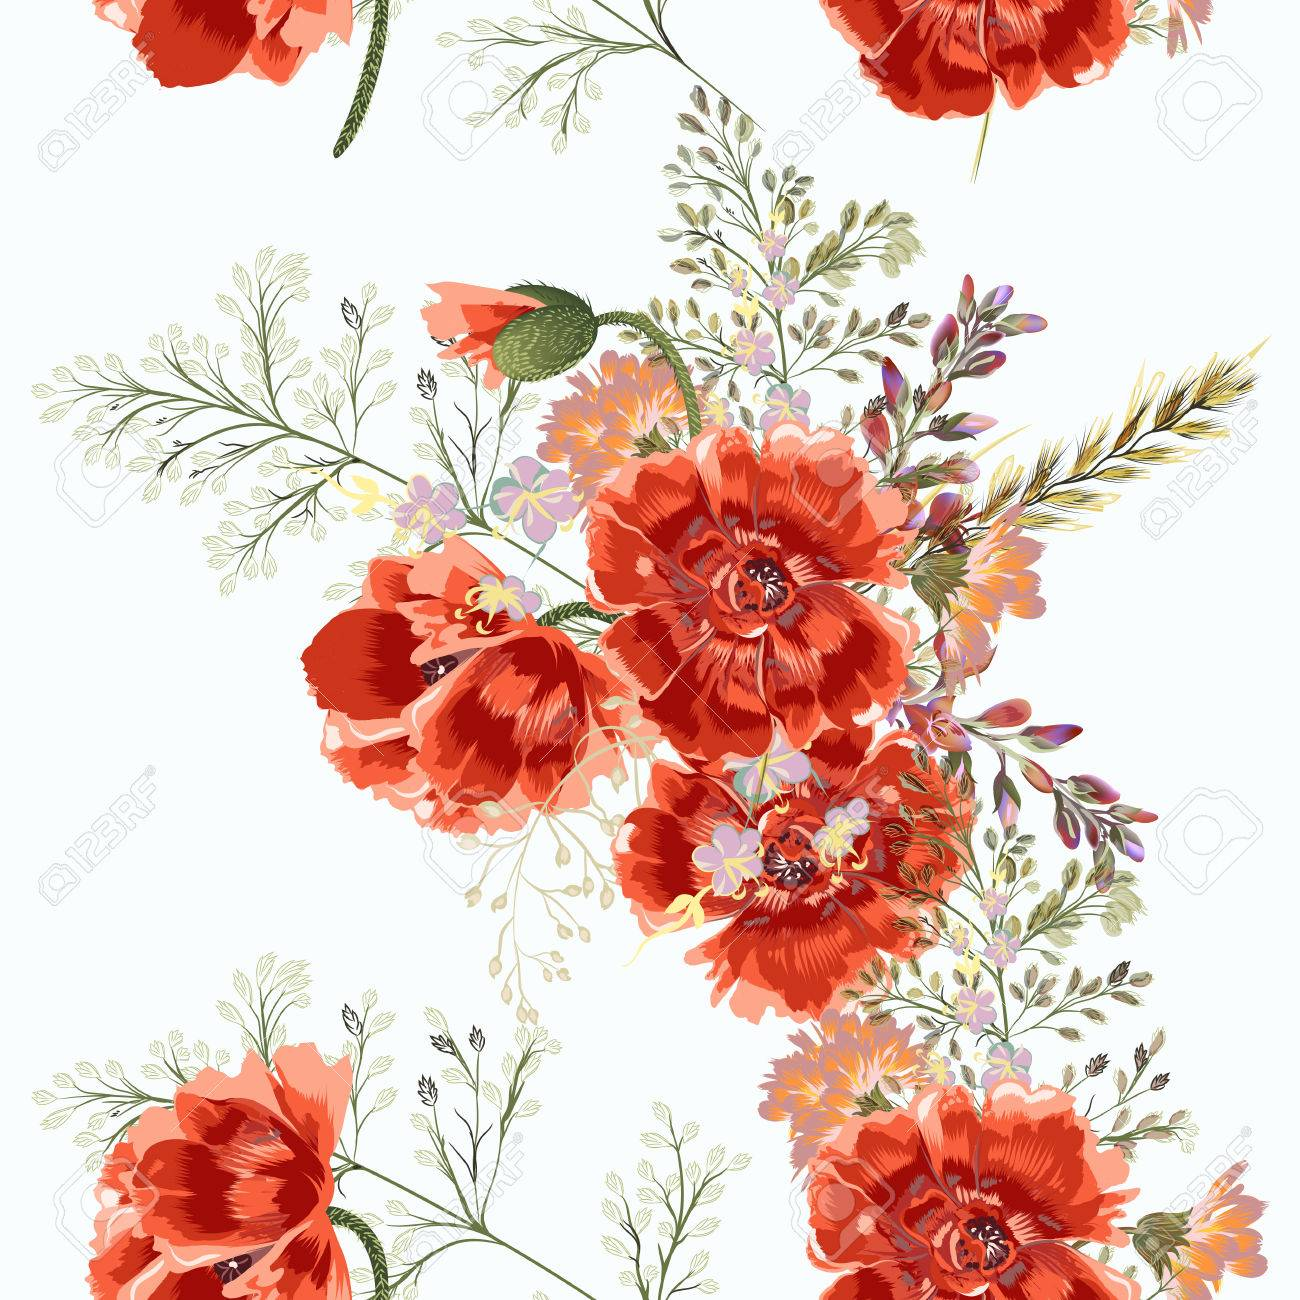 Floral Illustration With Field Poppy Red Flowers In Vintage